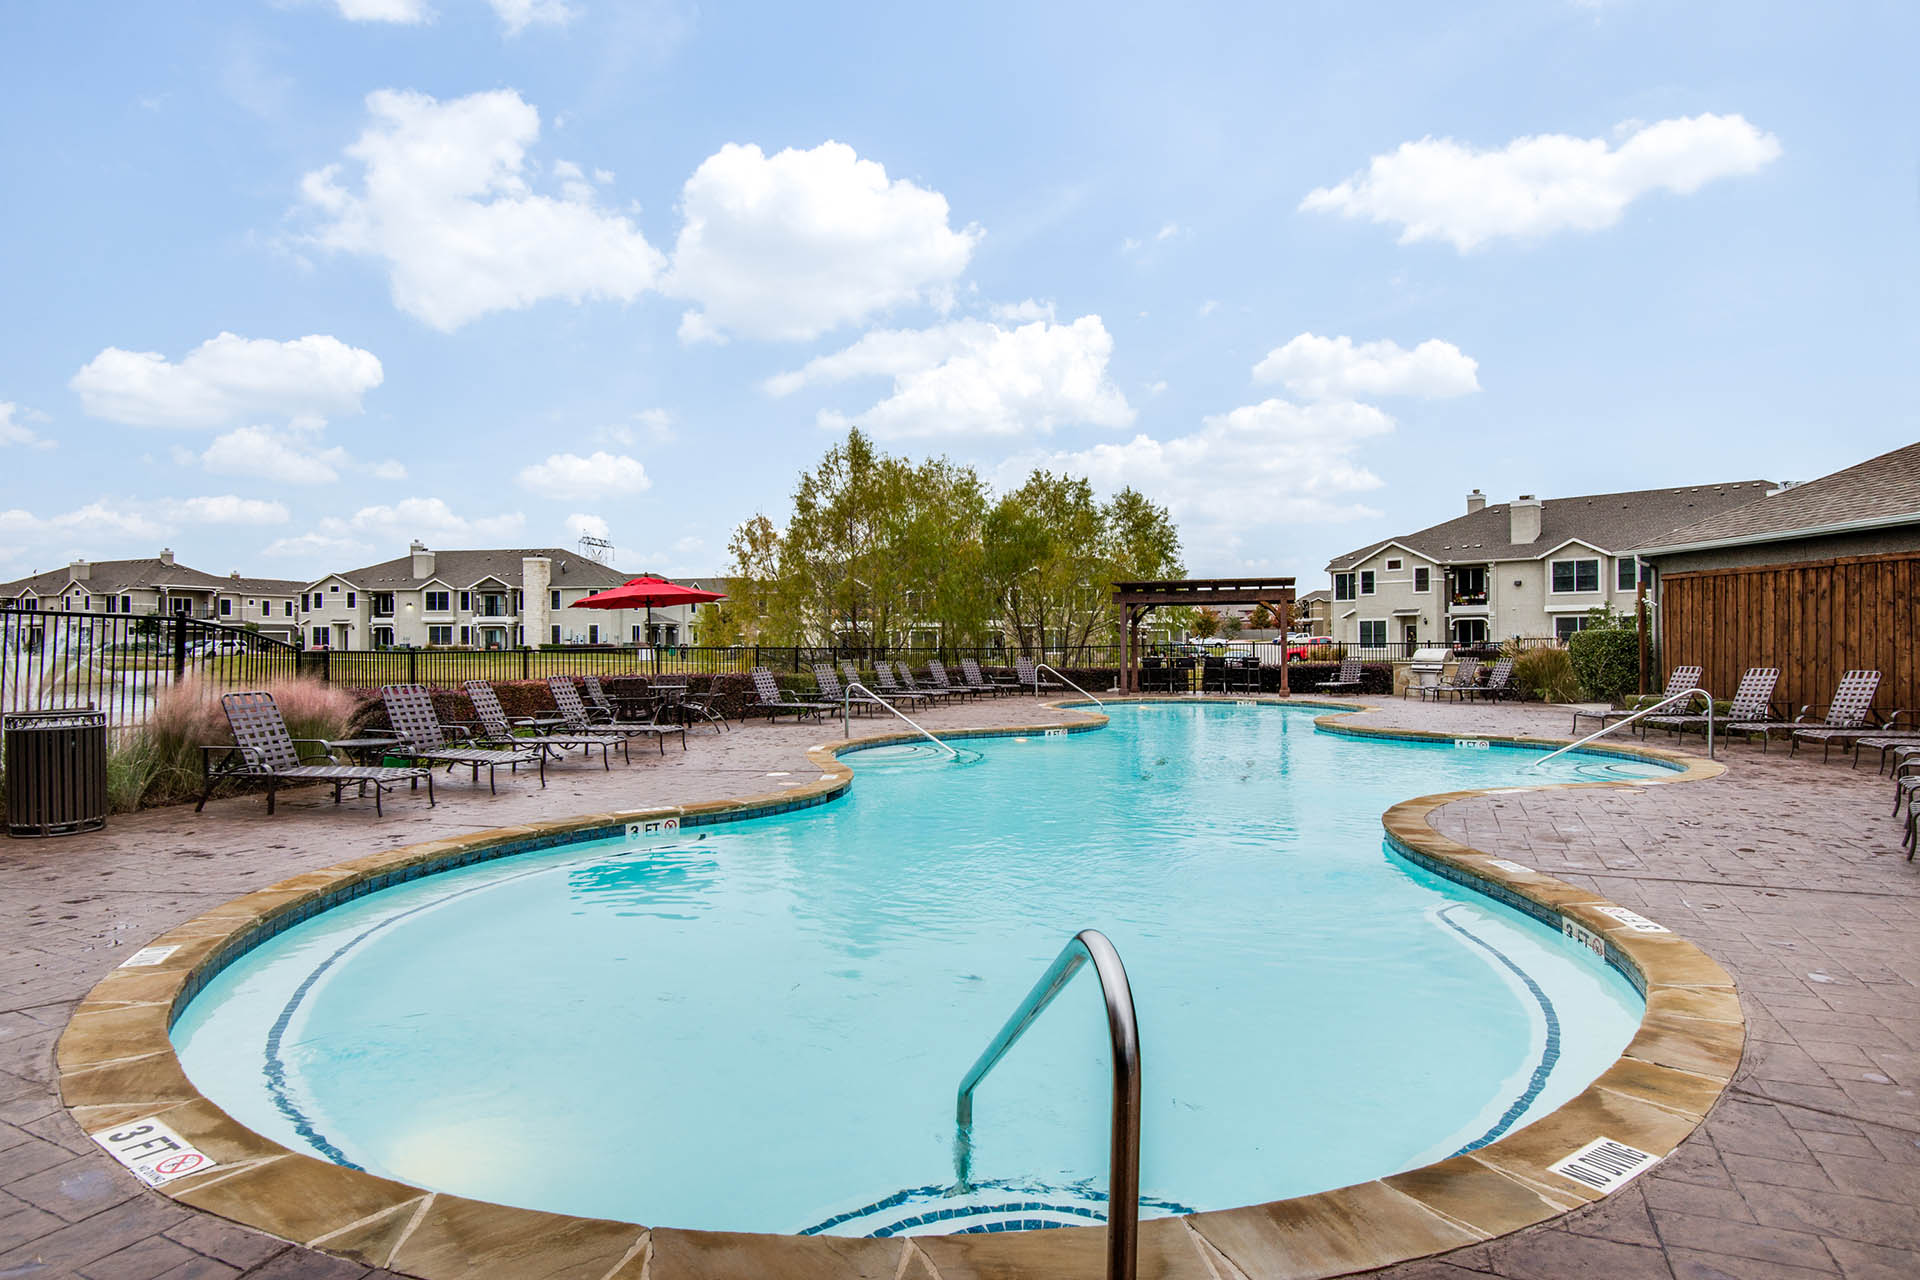 Resort-Style Swimming Pool with Deck at Orion Prosper, Prosper, Texas